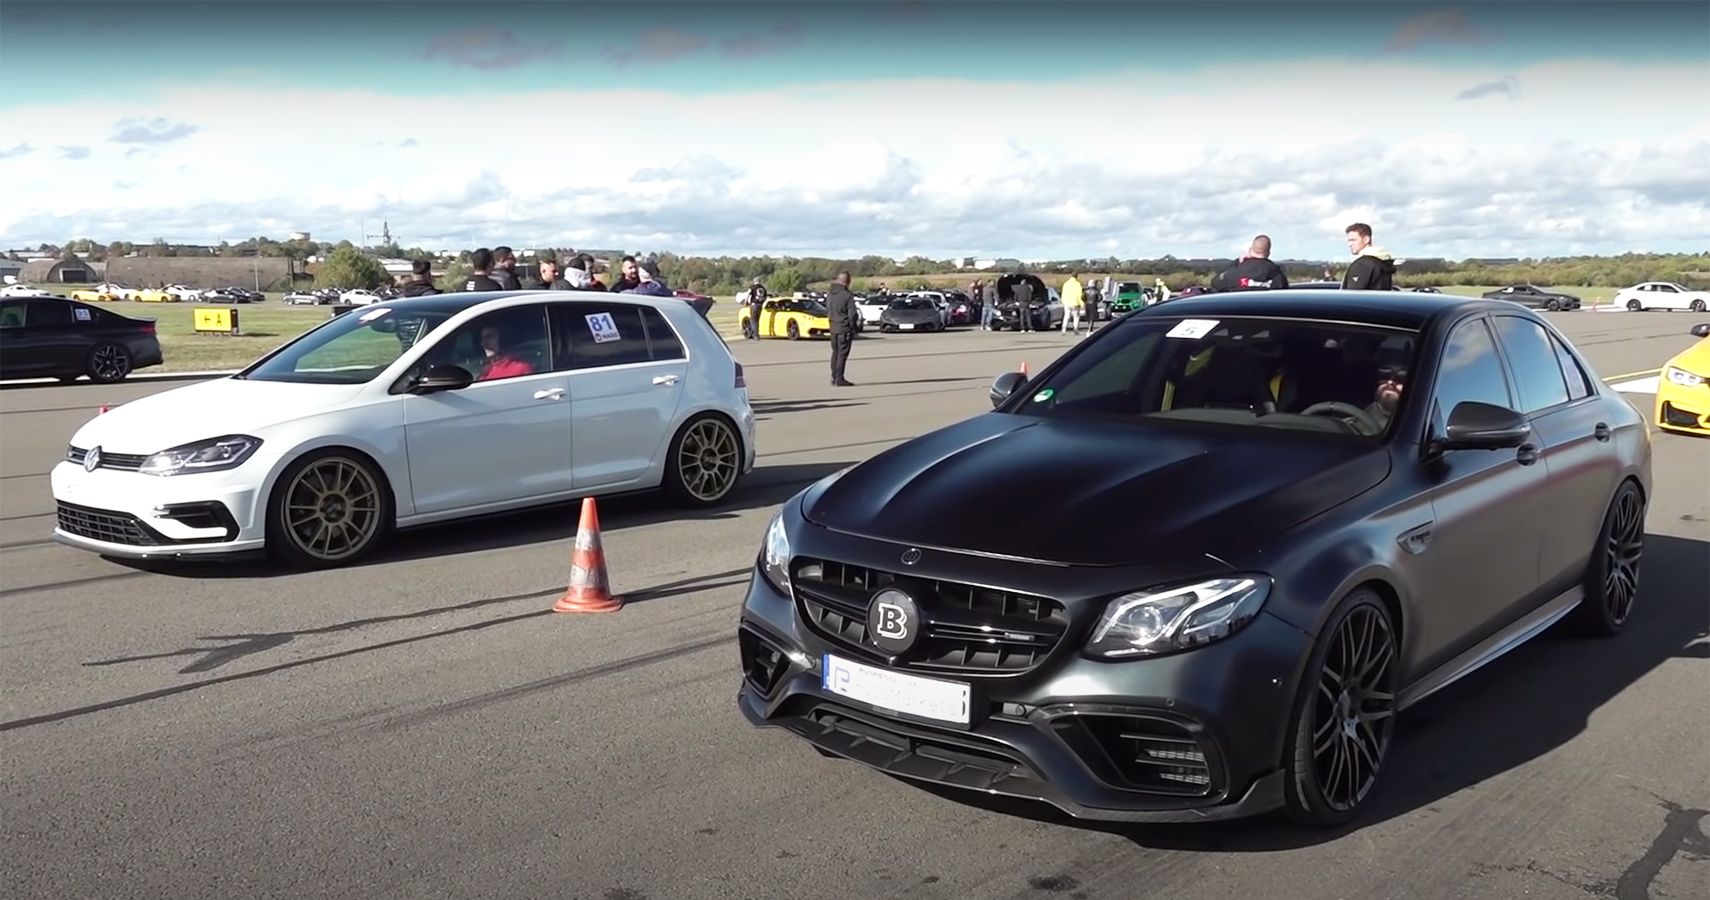 Watch A Brabus 800 E 63S Sprint To Action During A Drag Race In Germany